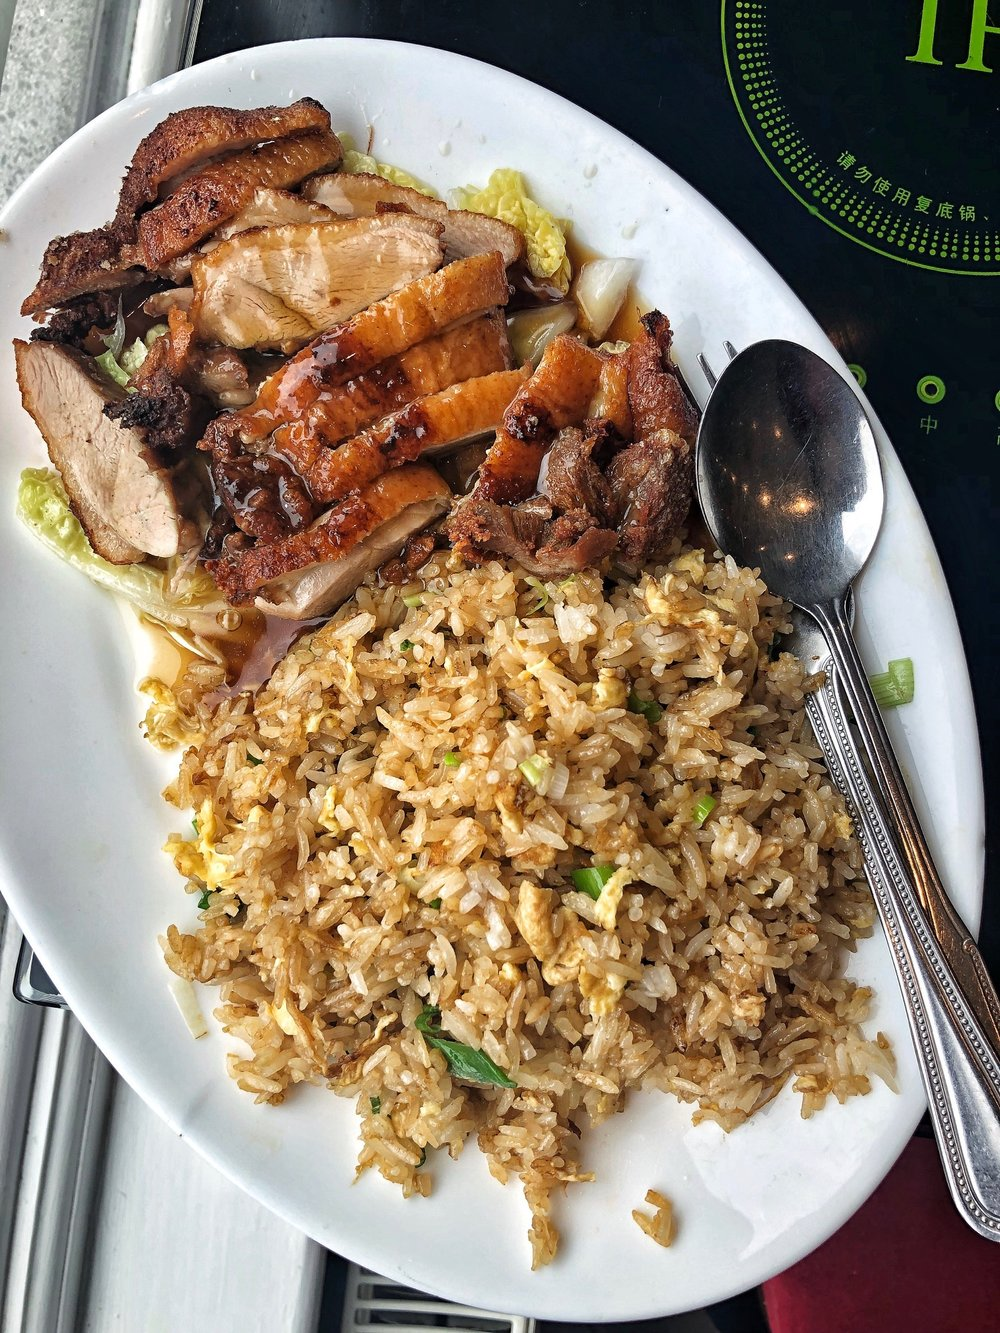 crispy duck and egg fried rice at Little Sichuan